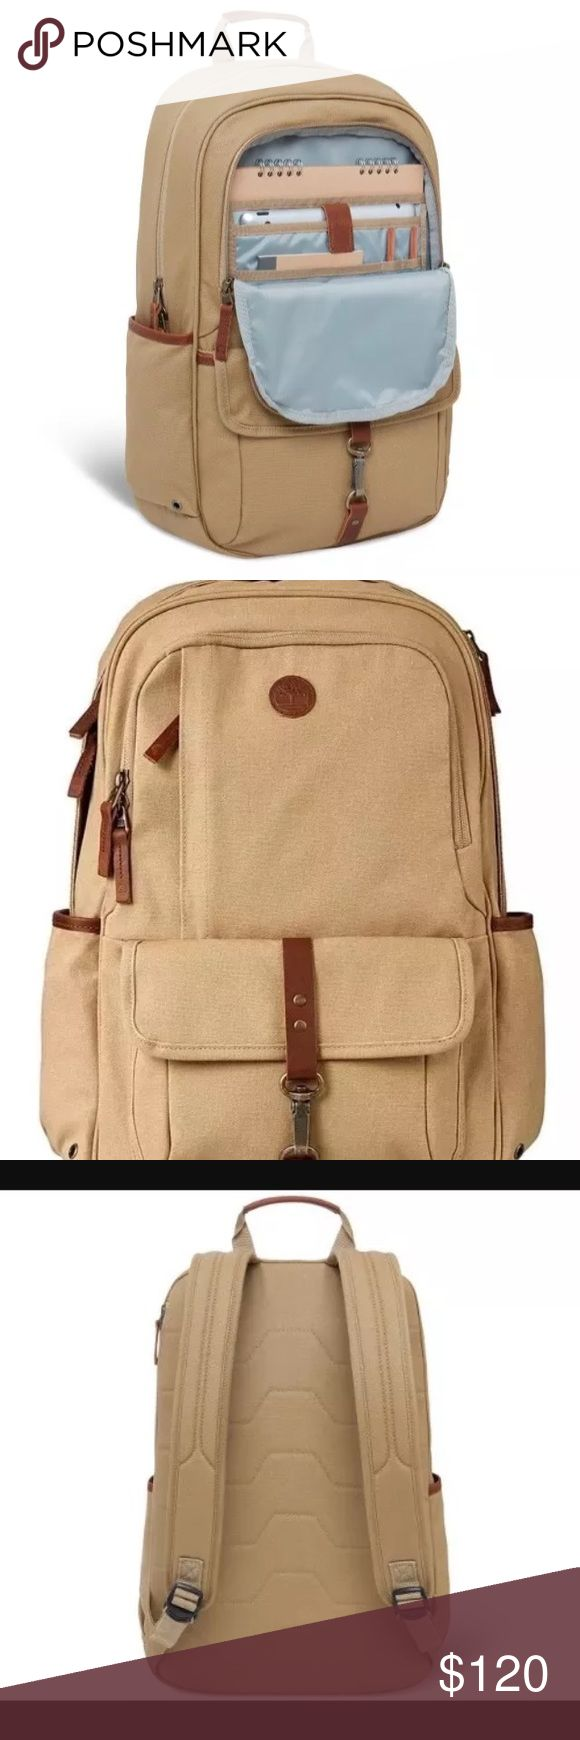 "TIMBERLAND IRELAND WALNUT HILL 24L LAPTOP BACKPACK The Walnut Hill Backpack is made of a tough canvas exterior with handsome leather trim and our go to bag for work, travel, or play. 100% canvas and leather trim. 1 exterior zipper pocket. 1 slide pocket with clasping closure. 2 side pockets. 1 large backside padded zipping pocket for laptops or tablets. 1 interior zipper pocket. Adjustable straps.carrying handles. Measures 19"" X 12.50"" X 5.50"". Tan Timberland Bags Laptop Bags"